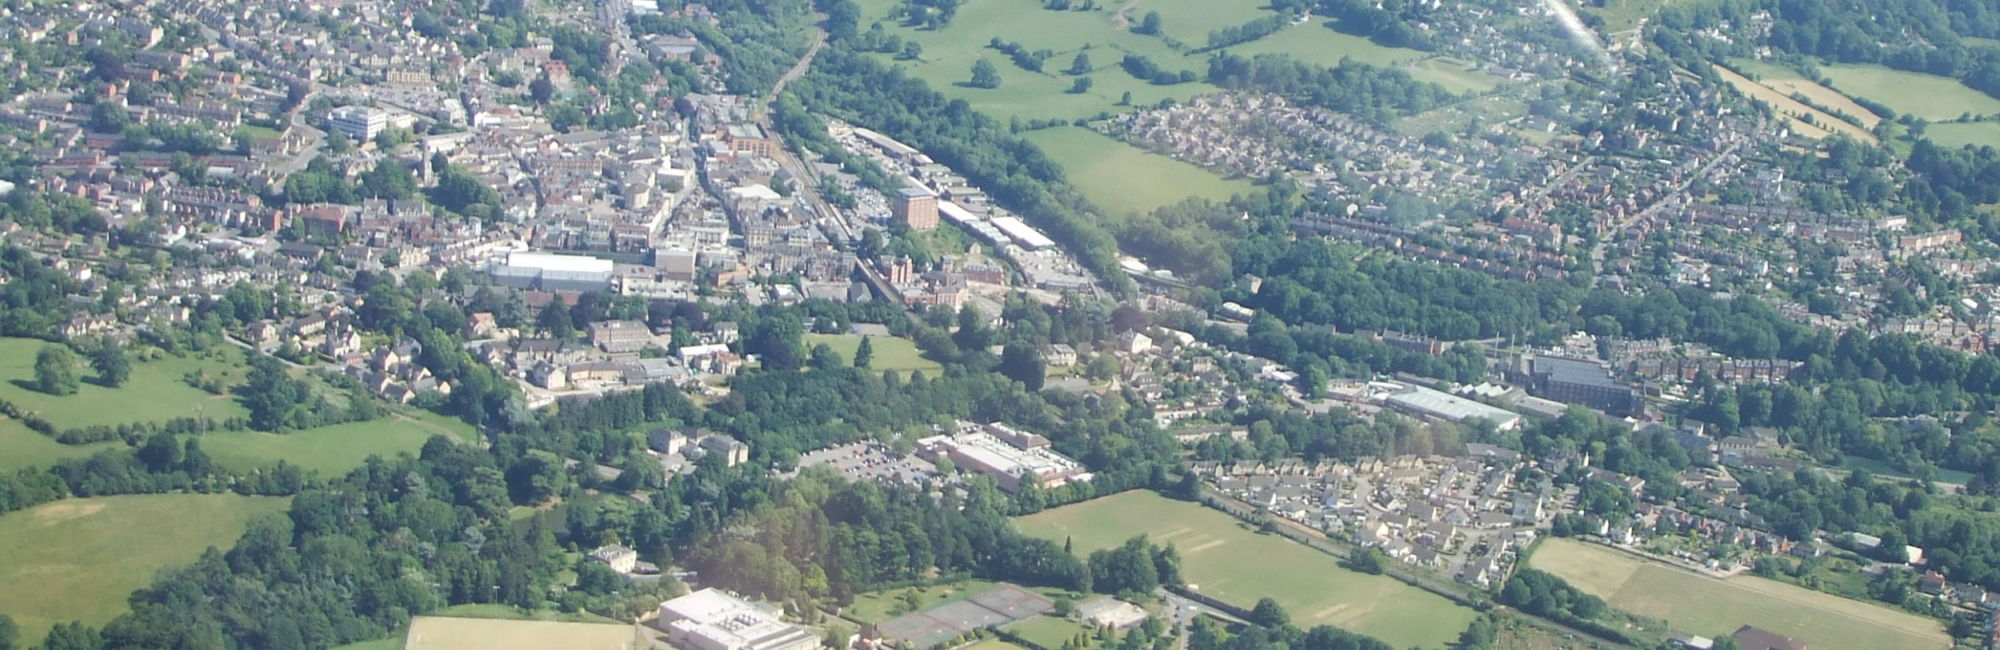 stroud in gloucestershire named as best place to live